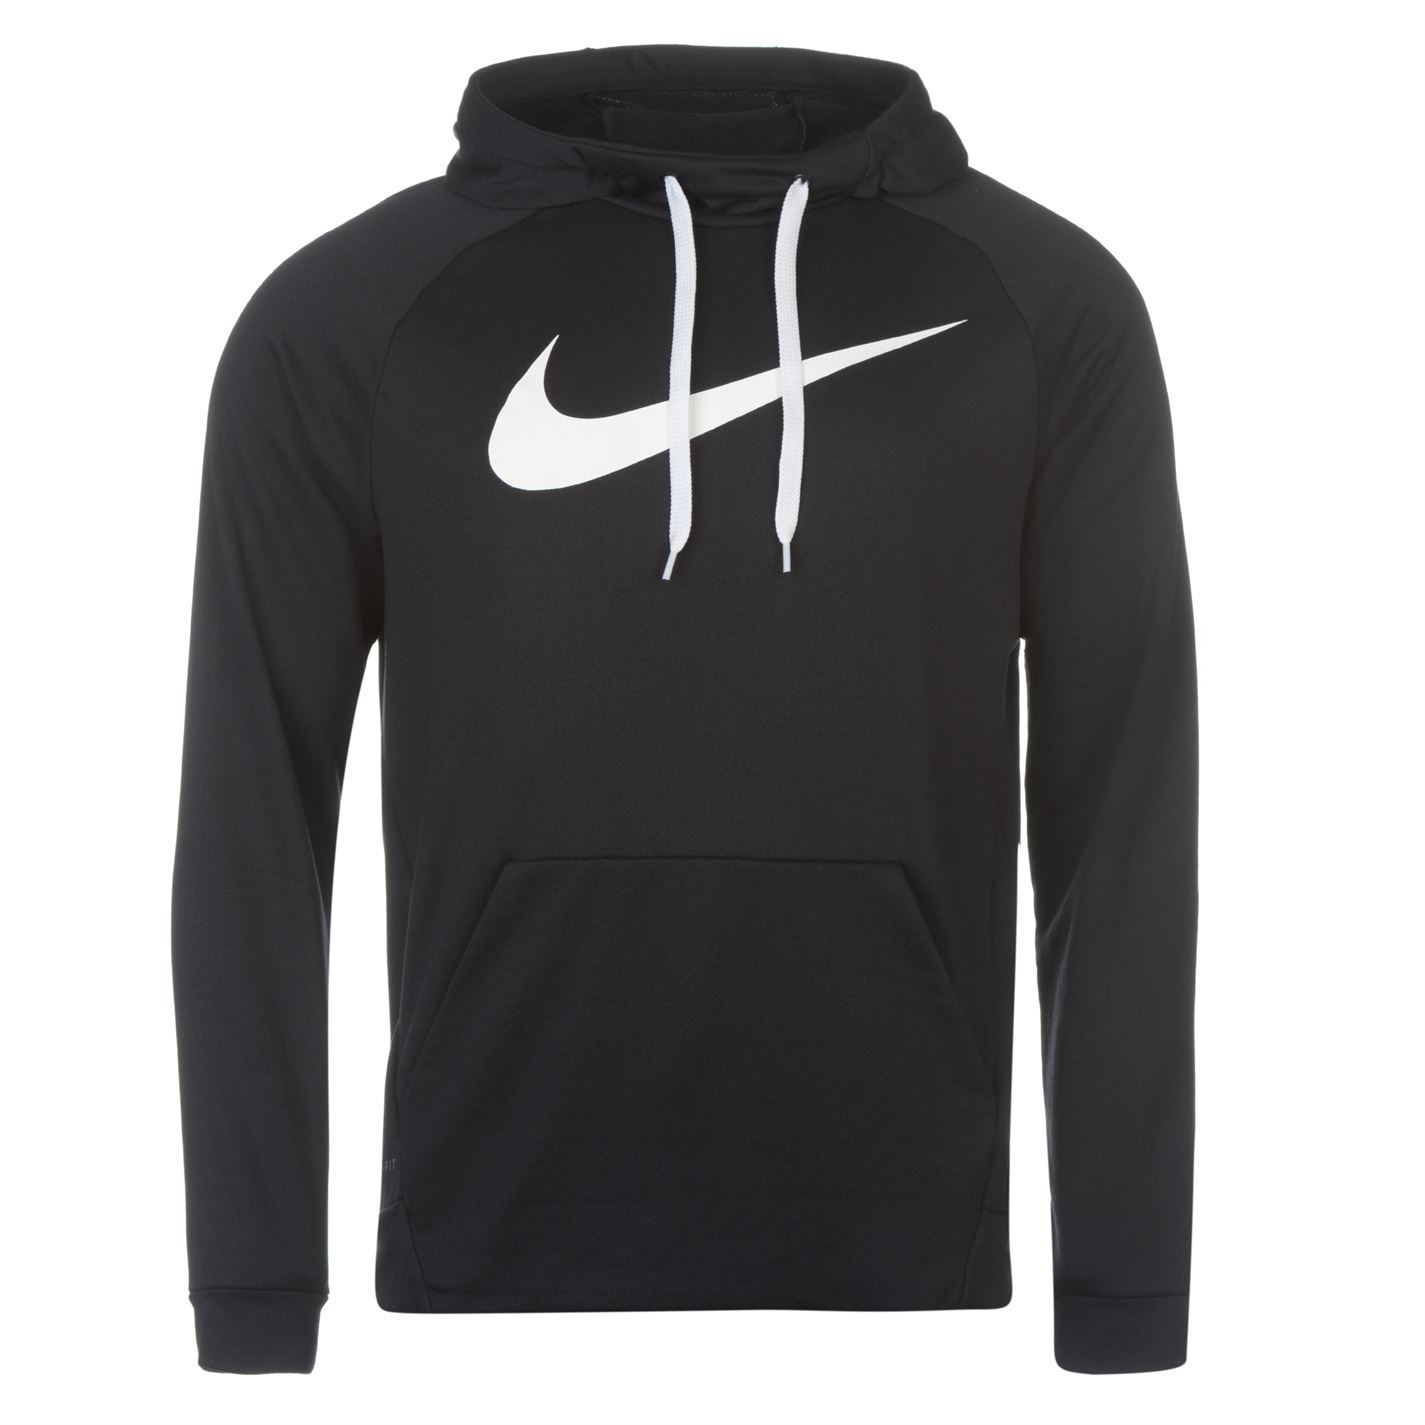 Nike-Dri-Fit-Swoosh-Pullover-Hoody-Mens-OTH-Hoodie-Sweatshirt-Sweater-Hooded-Top thumbnail 4